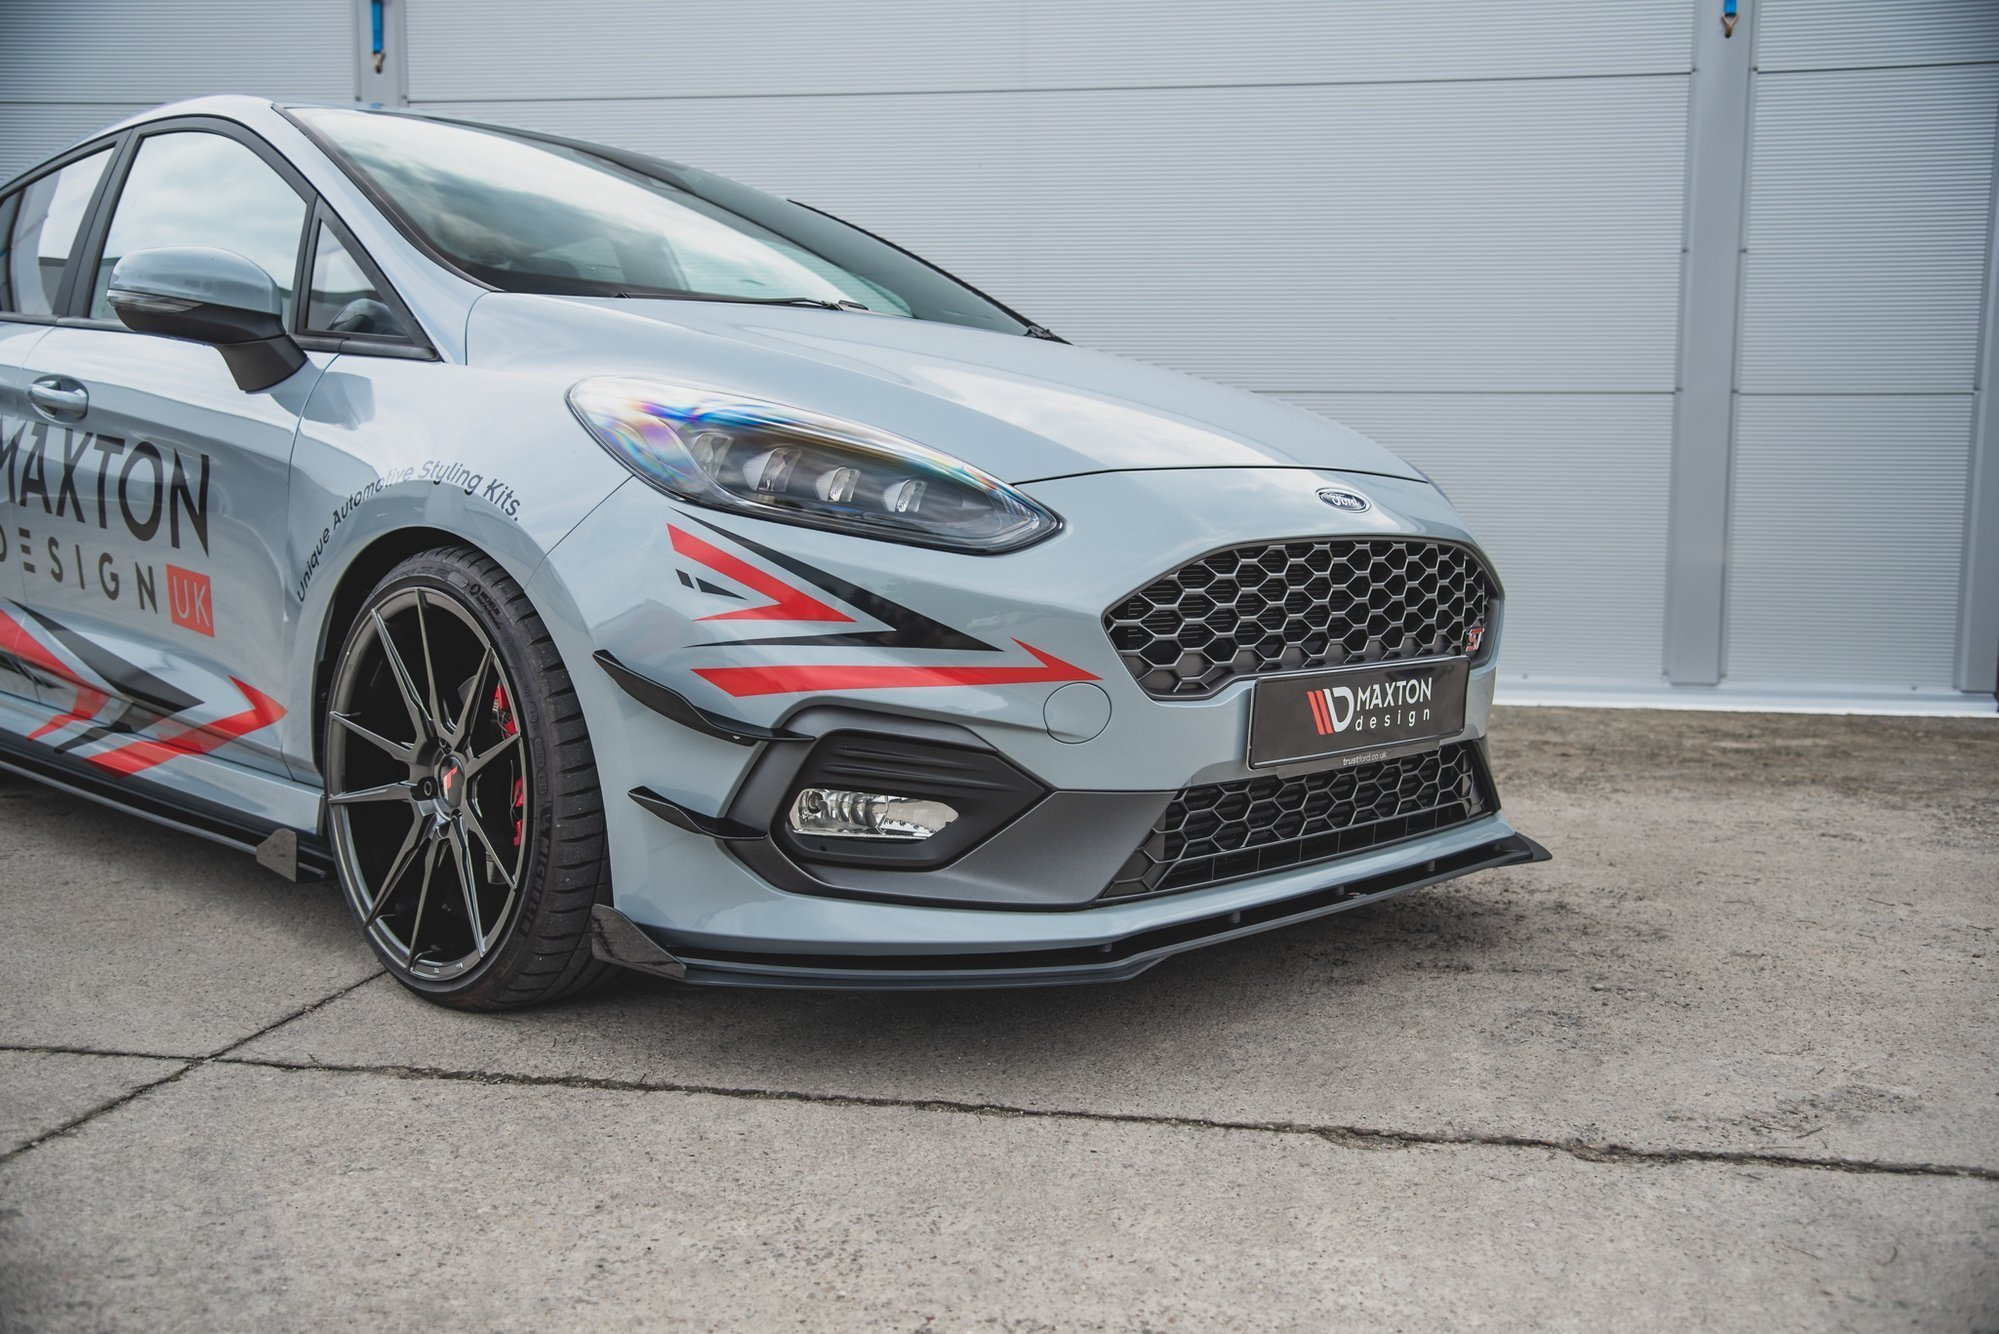 Racing Durability Front Splitter Flaps Ford Fiesta Mk8 St St Line Our Offer Ford Fiesta St Mk8 2018 Our Offer Ford Fiesta St Line Mk8 2017 Maxton Design